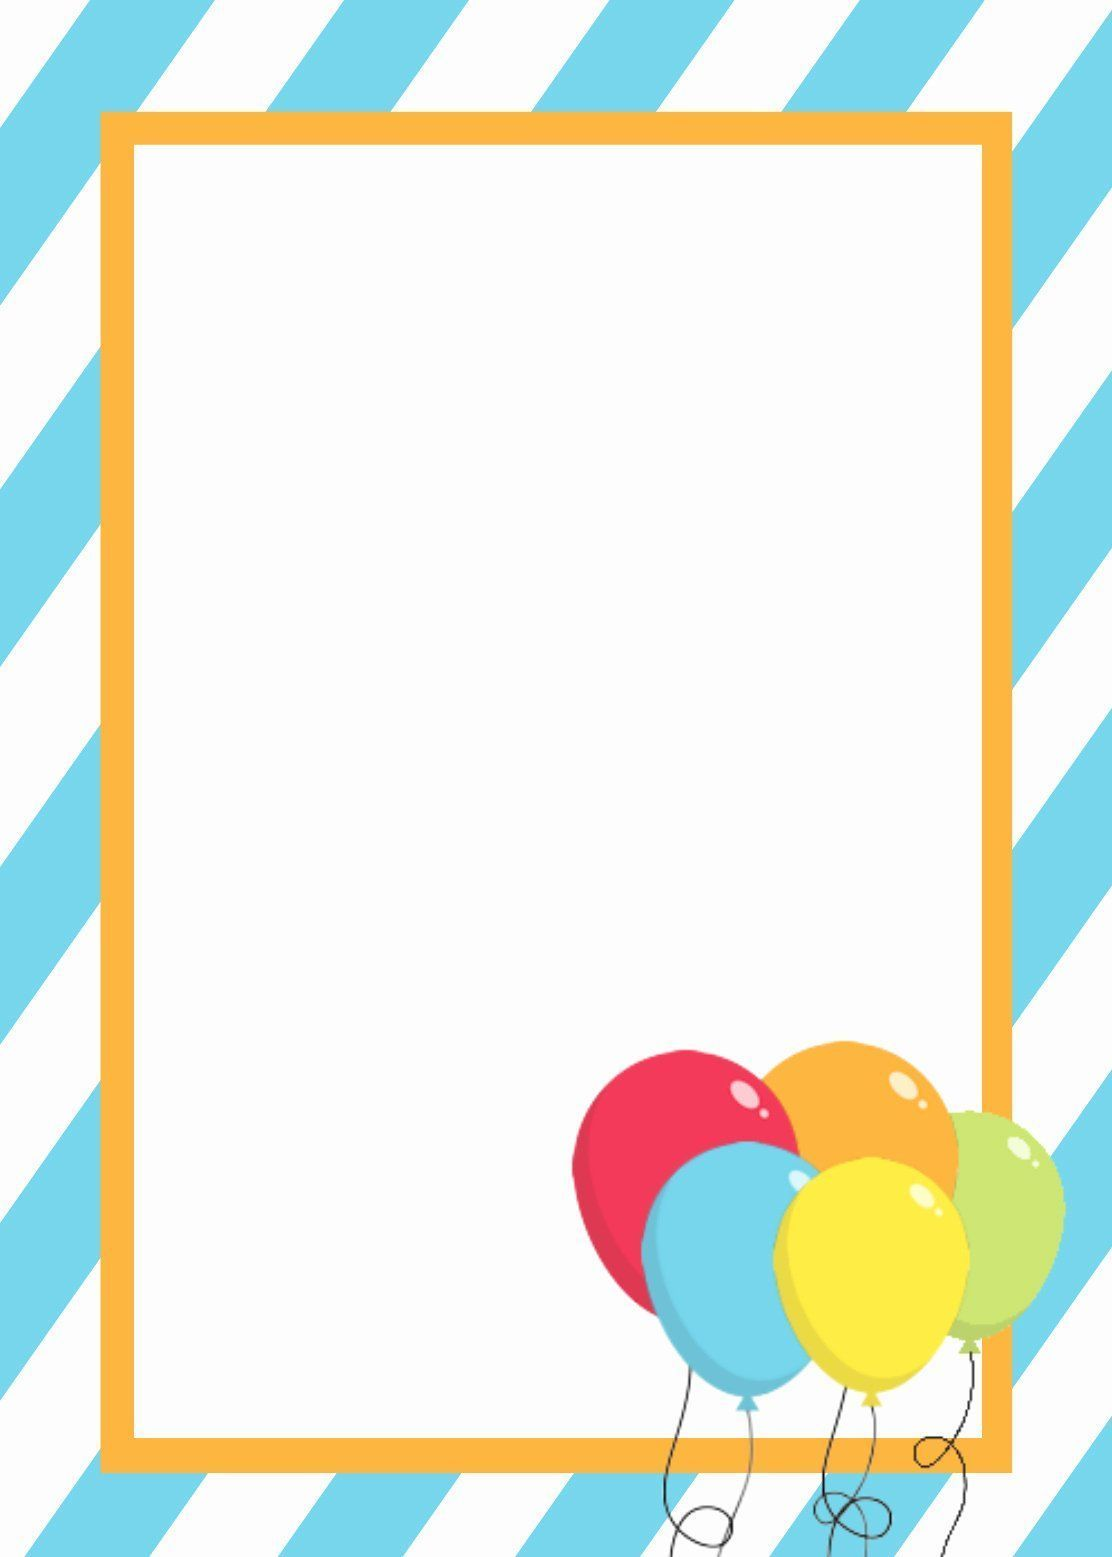 Free Printable Birthday Invitation Templates Best Of Free Printable Birthday Invitation Templates #50freeprintables Free Printable Birthday Invitation Templates Best Of Free Printable Birthday Invitation Templates #50freeprintables Free Printable Birthday Invitation Templates Best Of Free Printable Birthday Invitation Templates #50freeprintables Free Printable Birthday Invitation Templates Best Of Free Printable Birthday Invitation Templates #50freeprintables